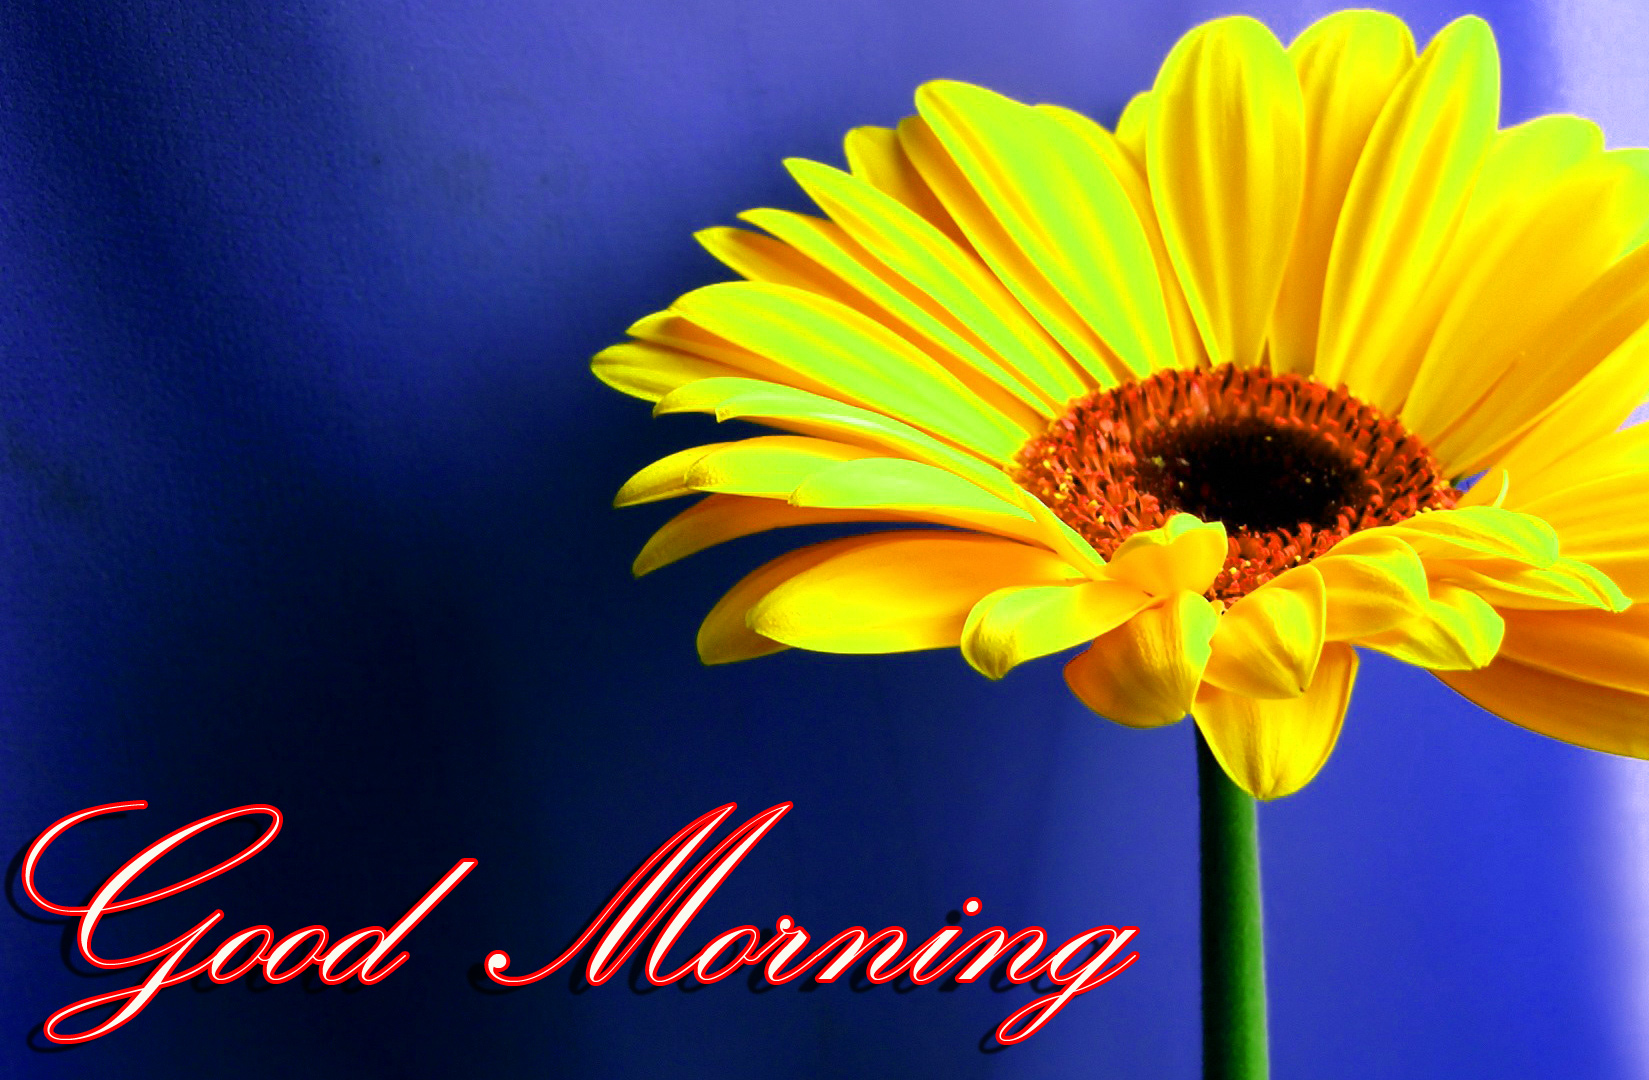 Good Morning Images Wallpaper Photo Pictures HD